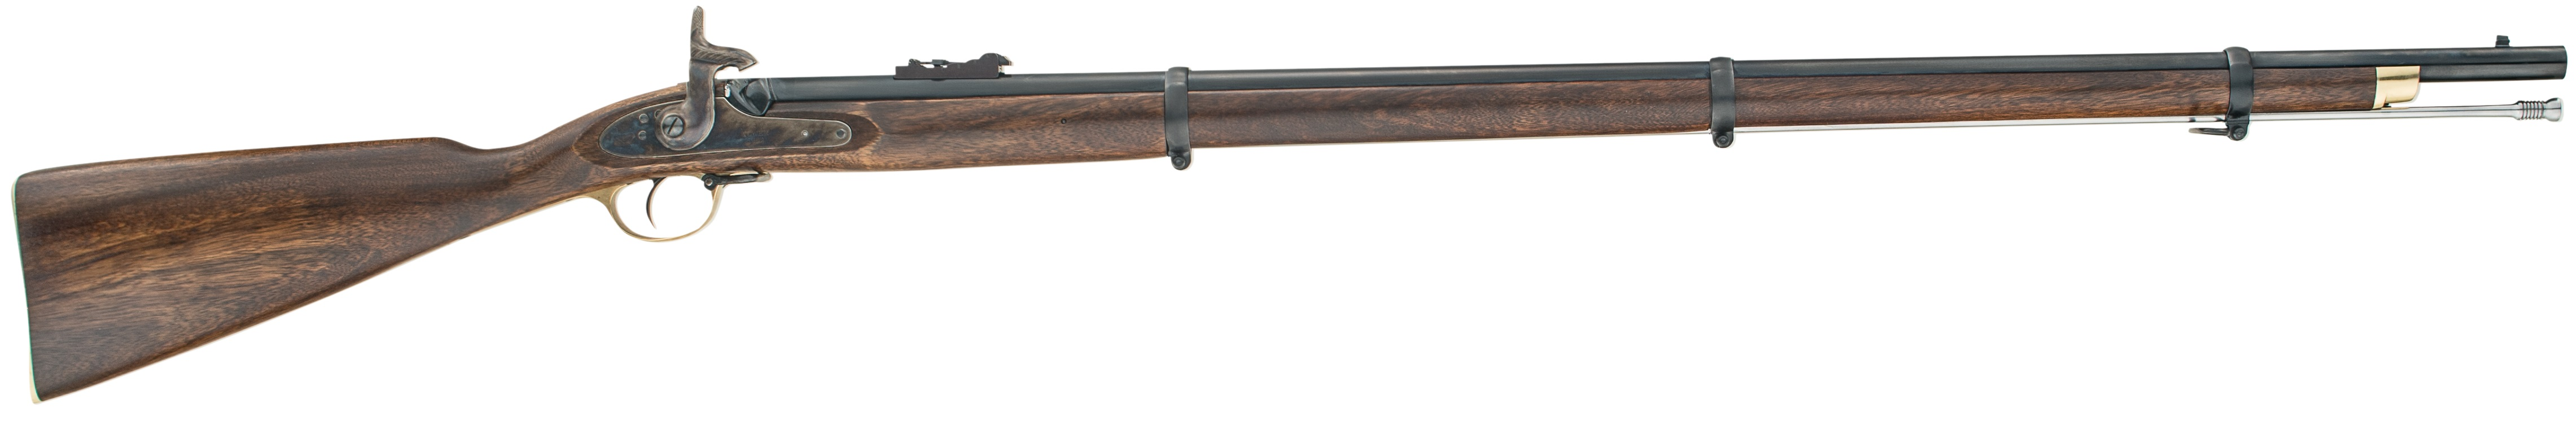 1853 Enfield 3 Band Musket Chiappa